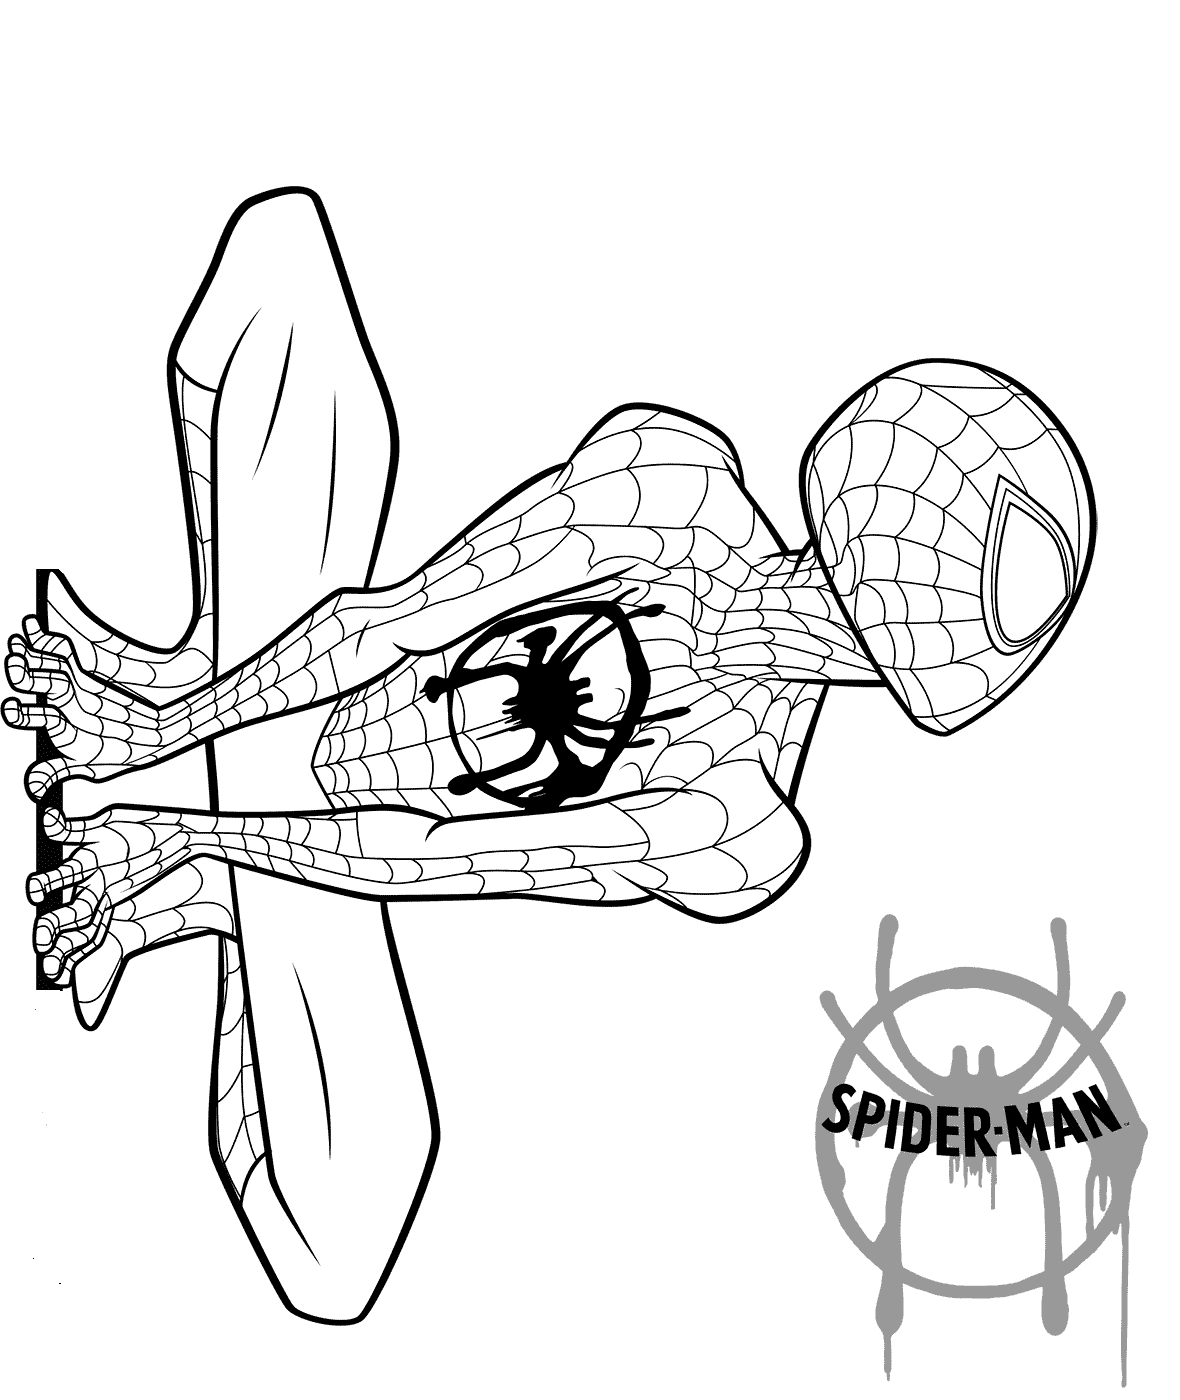 Spiderman U Verse Coloring Pages Images